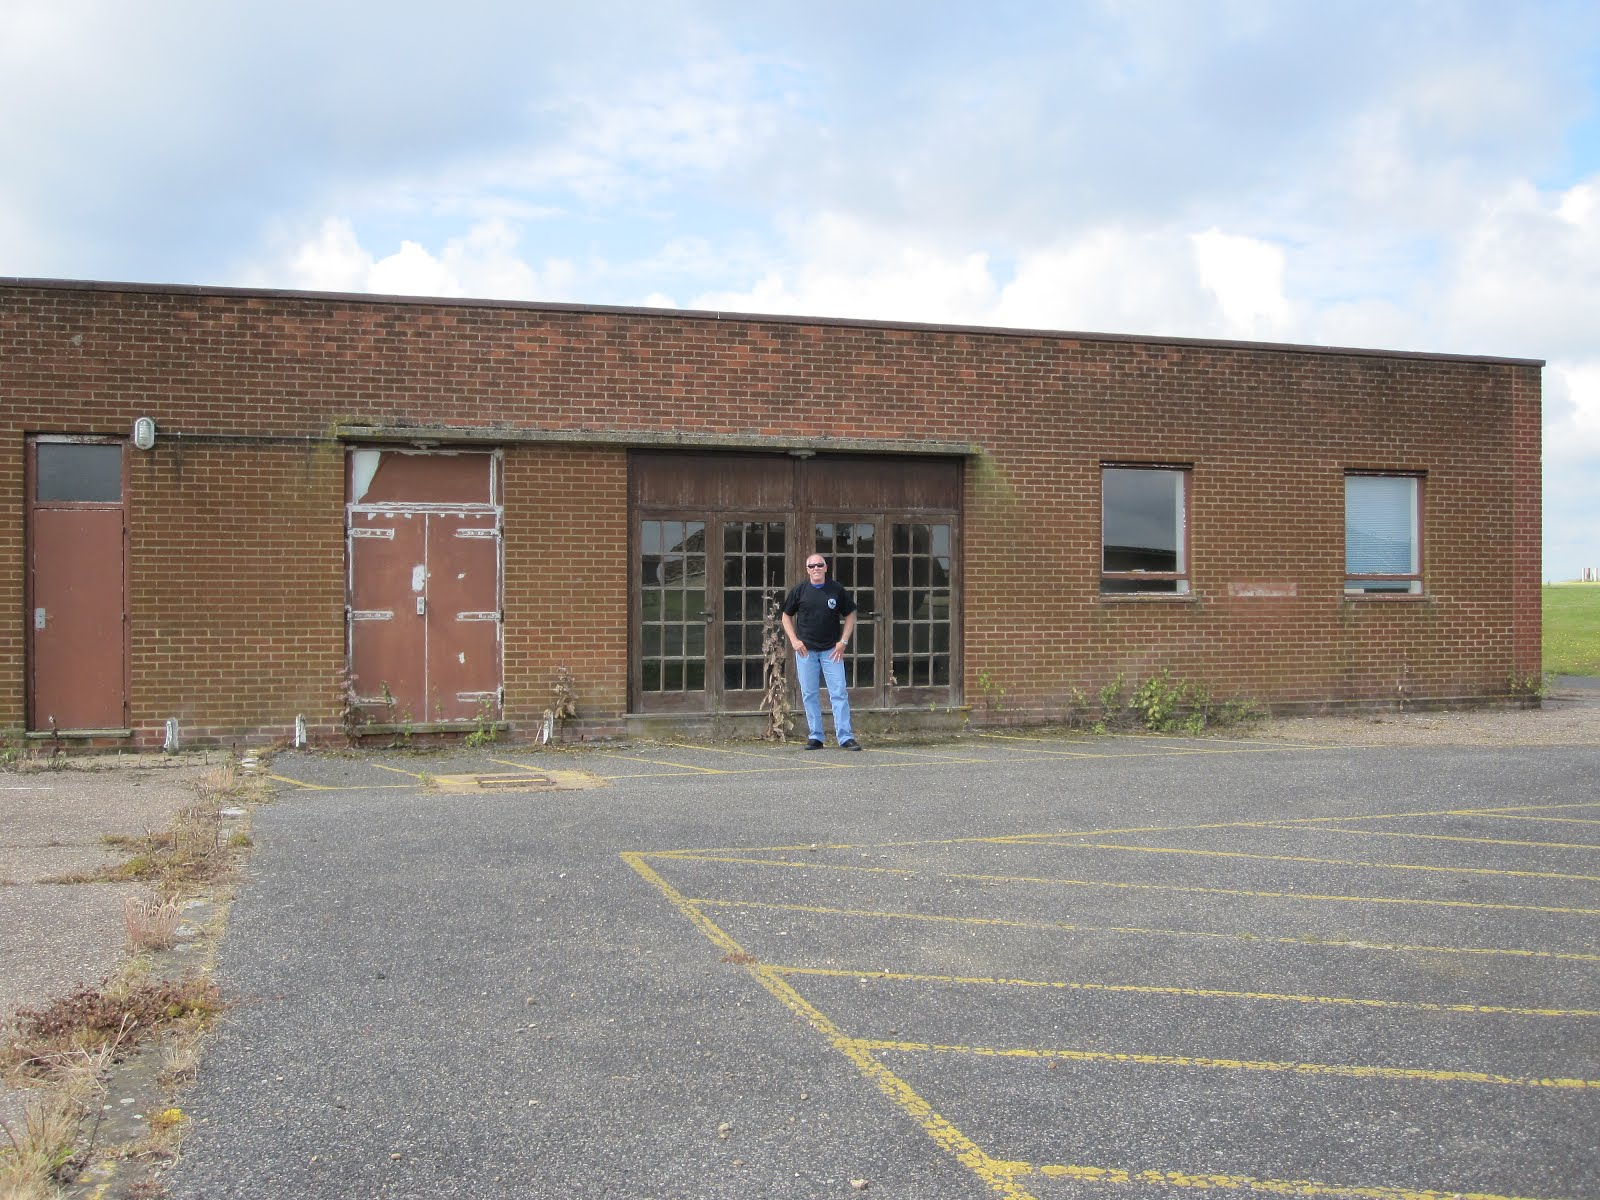 rowdy in raf bentwaters both of those squadrons moved to raf alconbury in 1988 at that same time an f 16 aggressor squadron moved to bentwaters and took over this building after